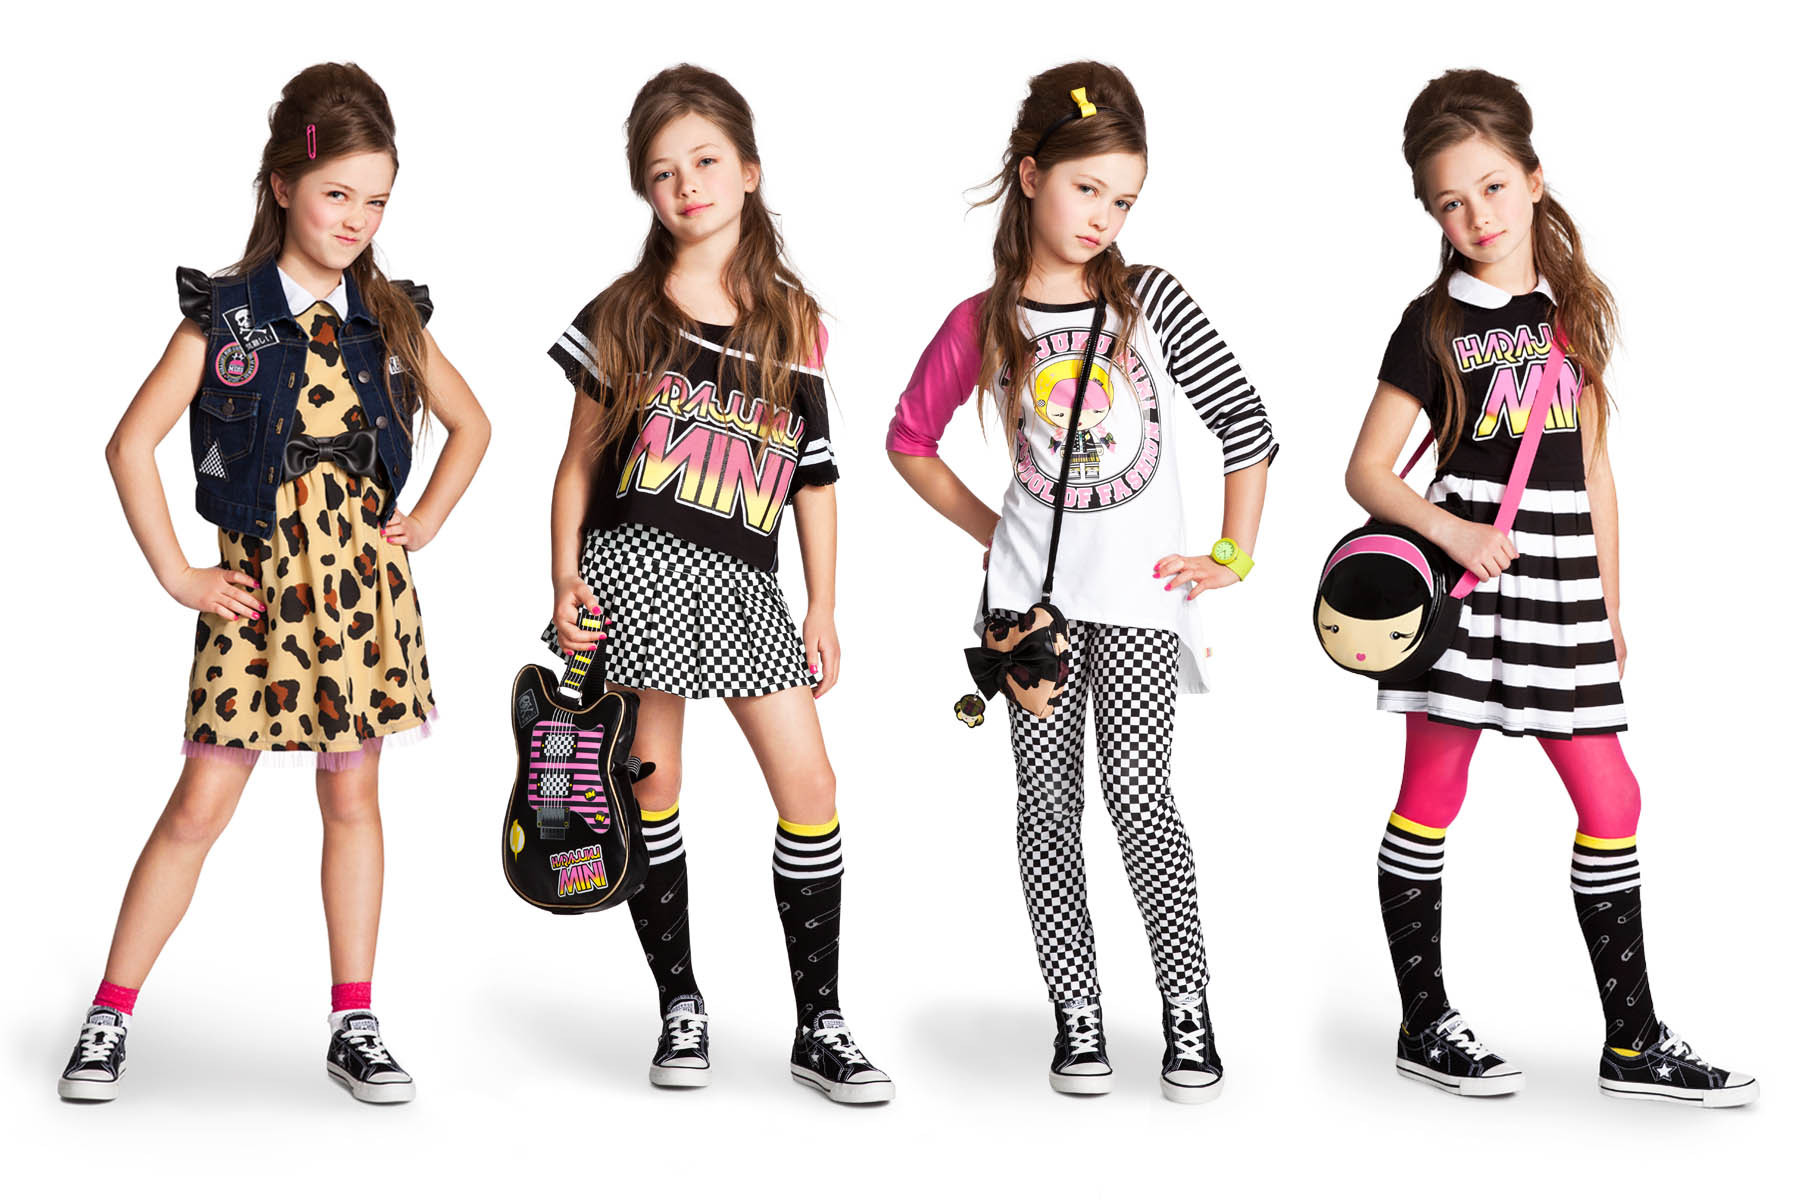 The Latest Trends in Junior Clothing and Teen Clothing at Affordable Prices. On-Trend Cute Cheap Clothes Featuring Fashion Dresses, Trendy Shoes, and Hot Fashion Accessories with Free Shipping. Junior Clothing and Teen Clothing Fashions Start Here.